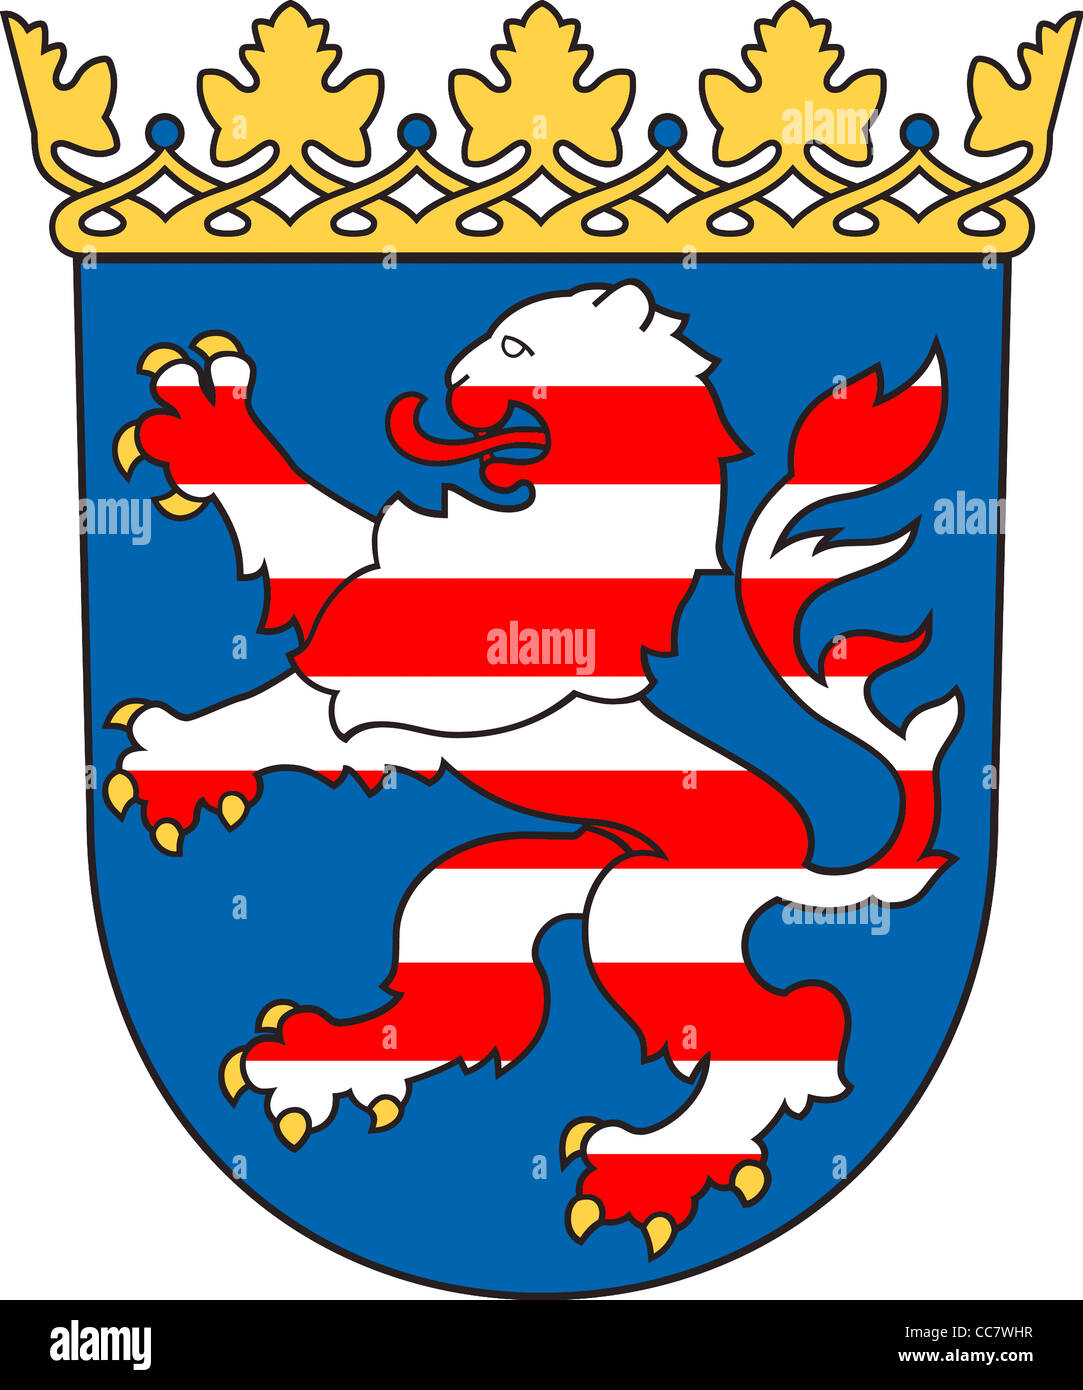 Coat of arms of the German federal state Hesse. - Stock Image